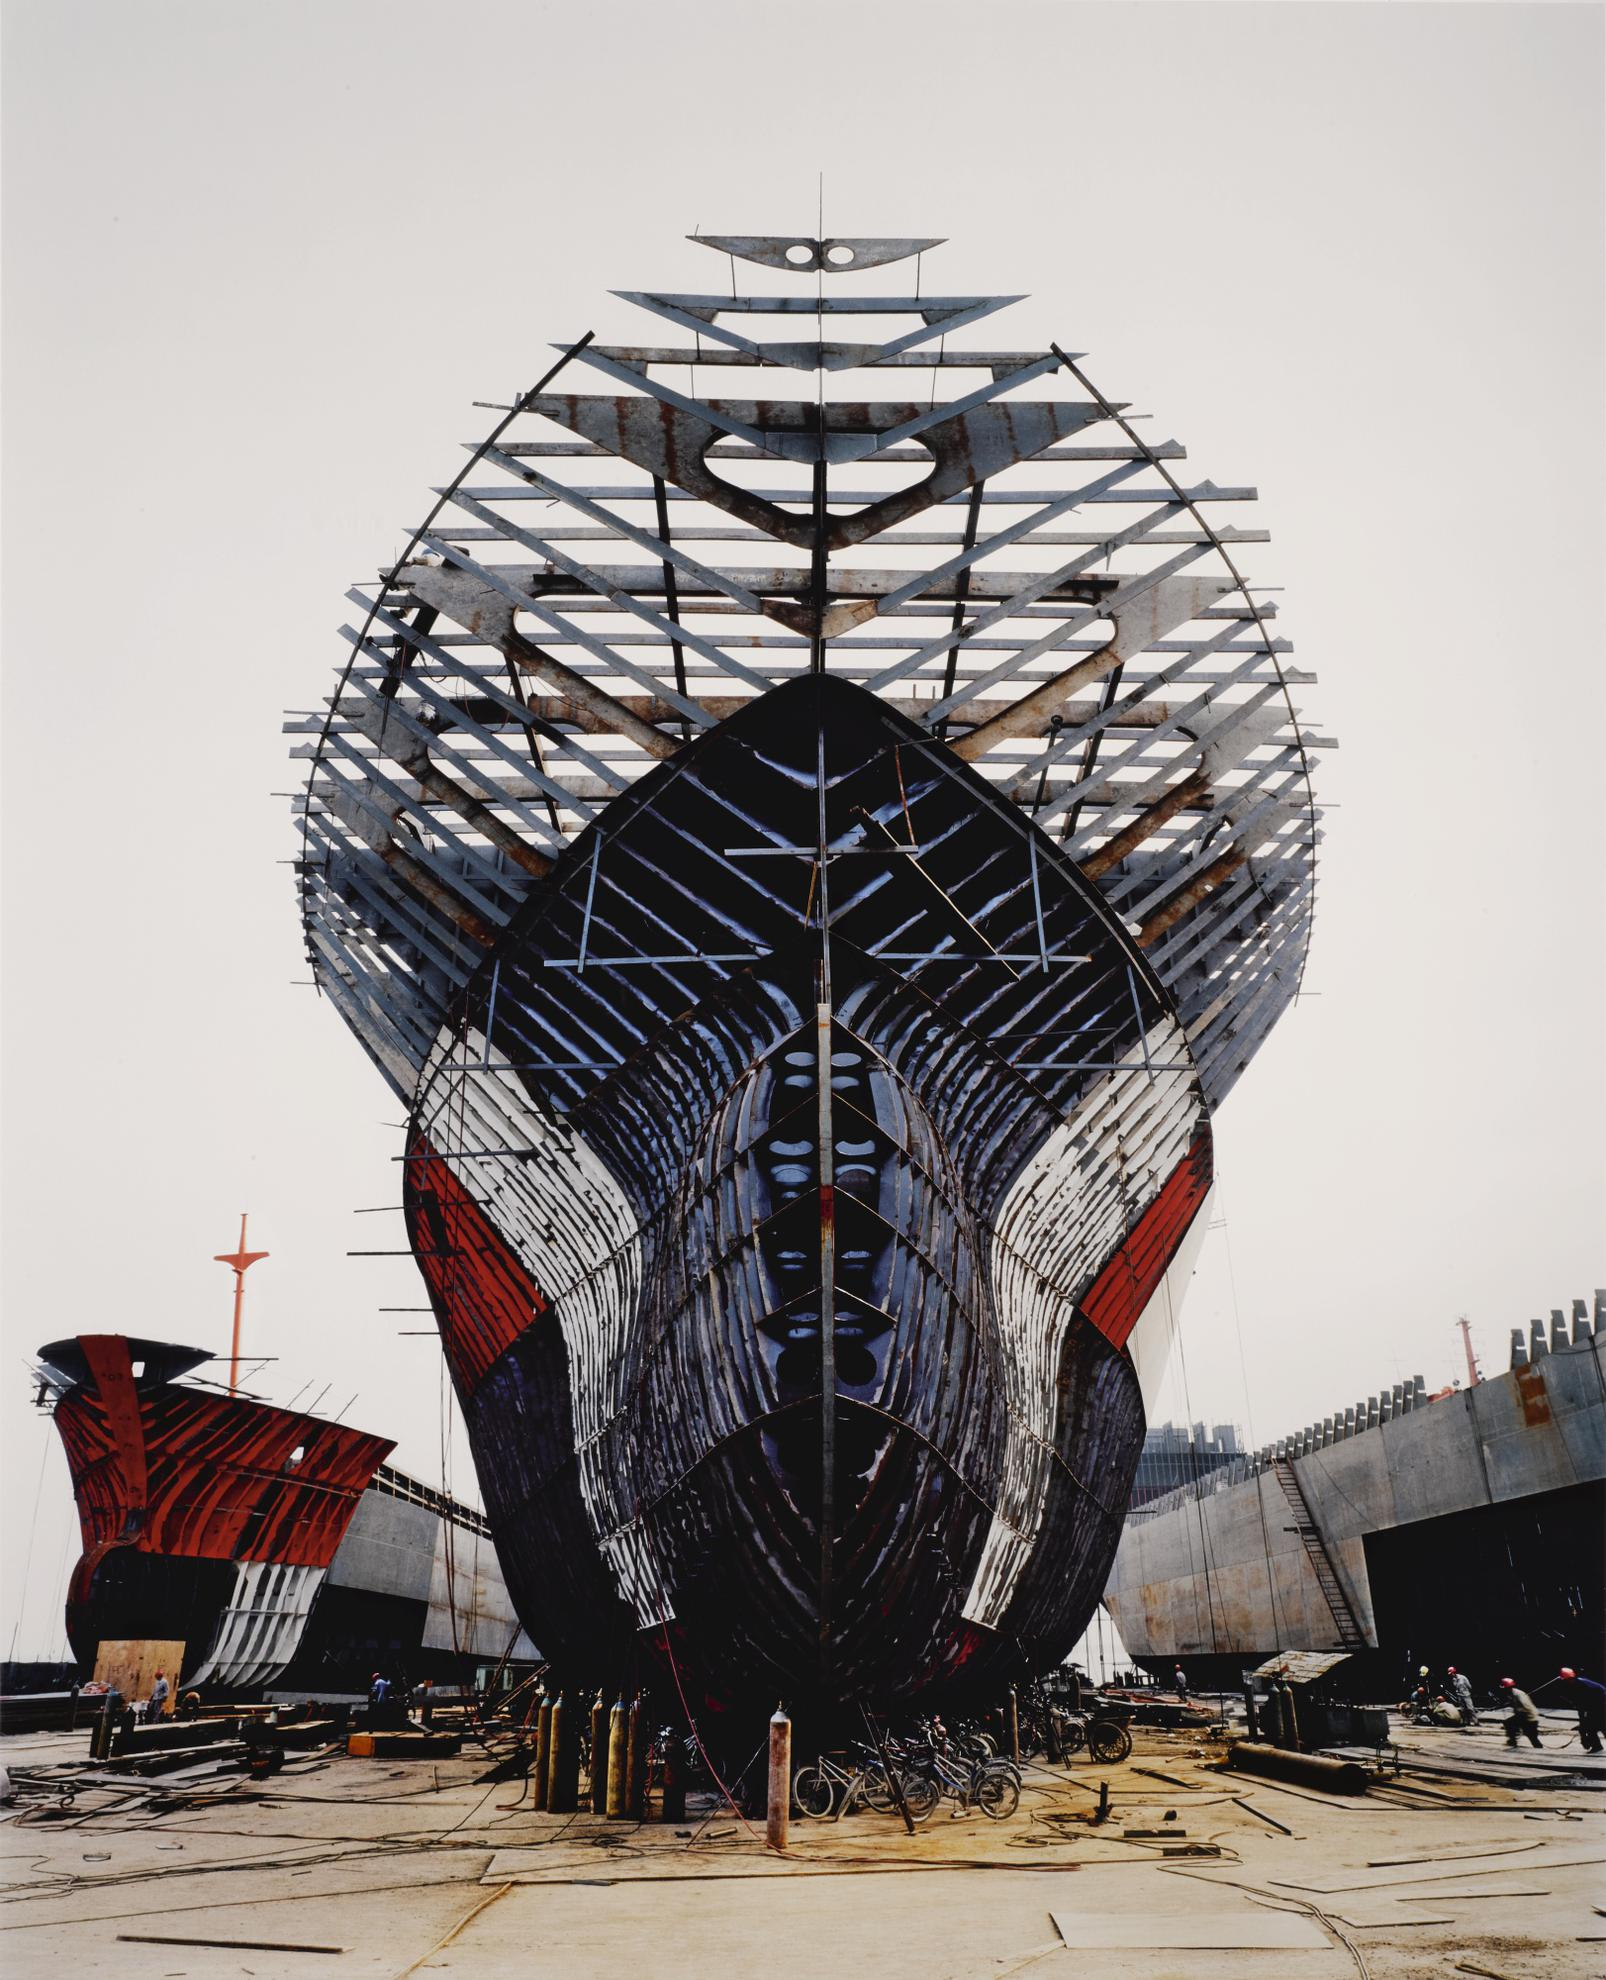 Edward Burtynsky-Shipyard #11, Qili Port, Zhejiang Province, China-2005